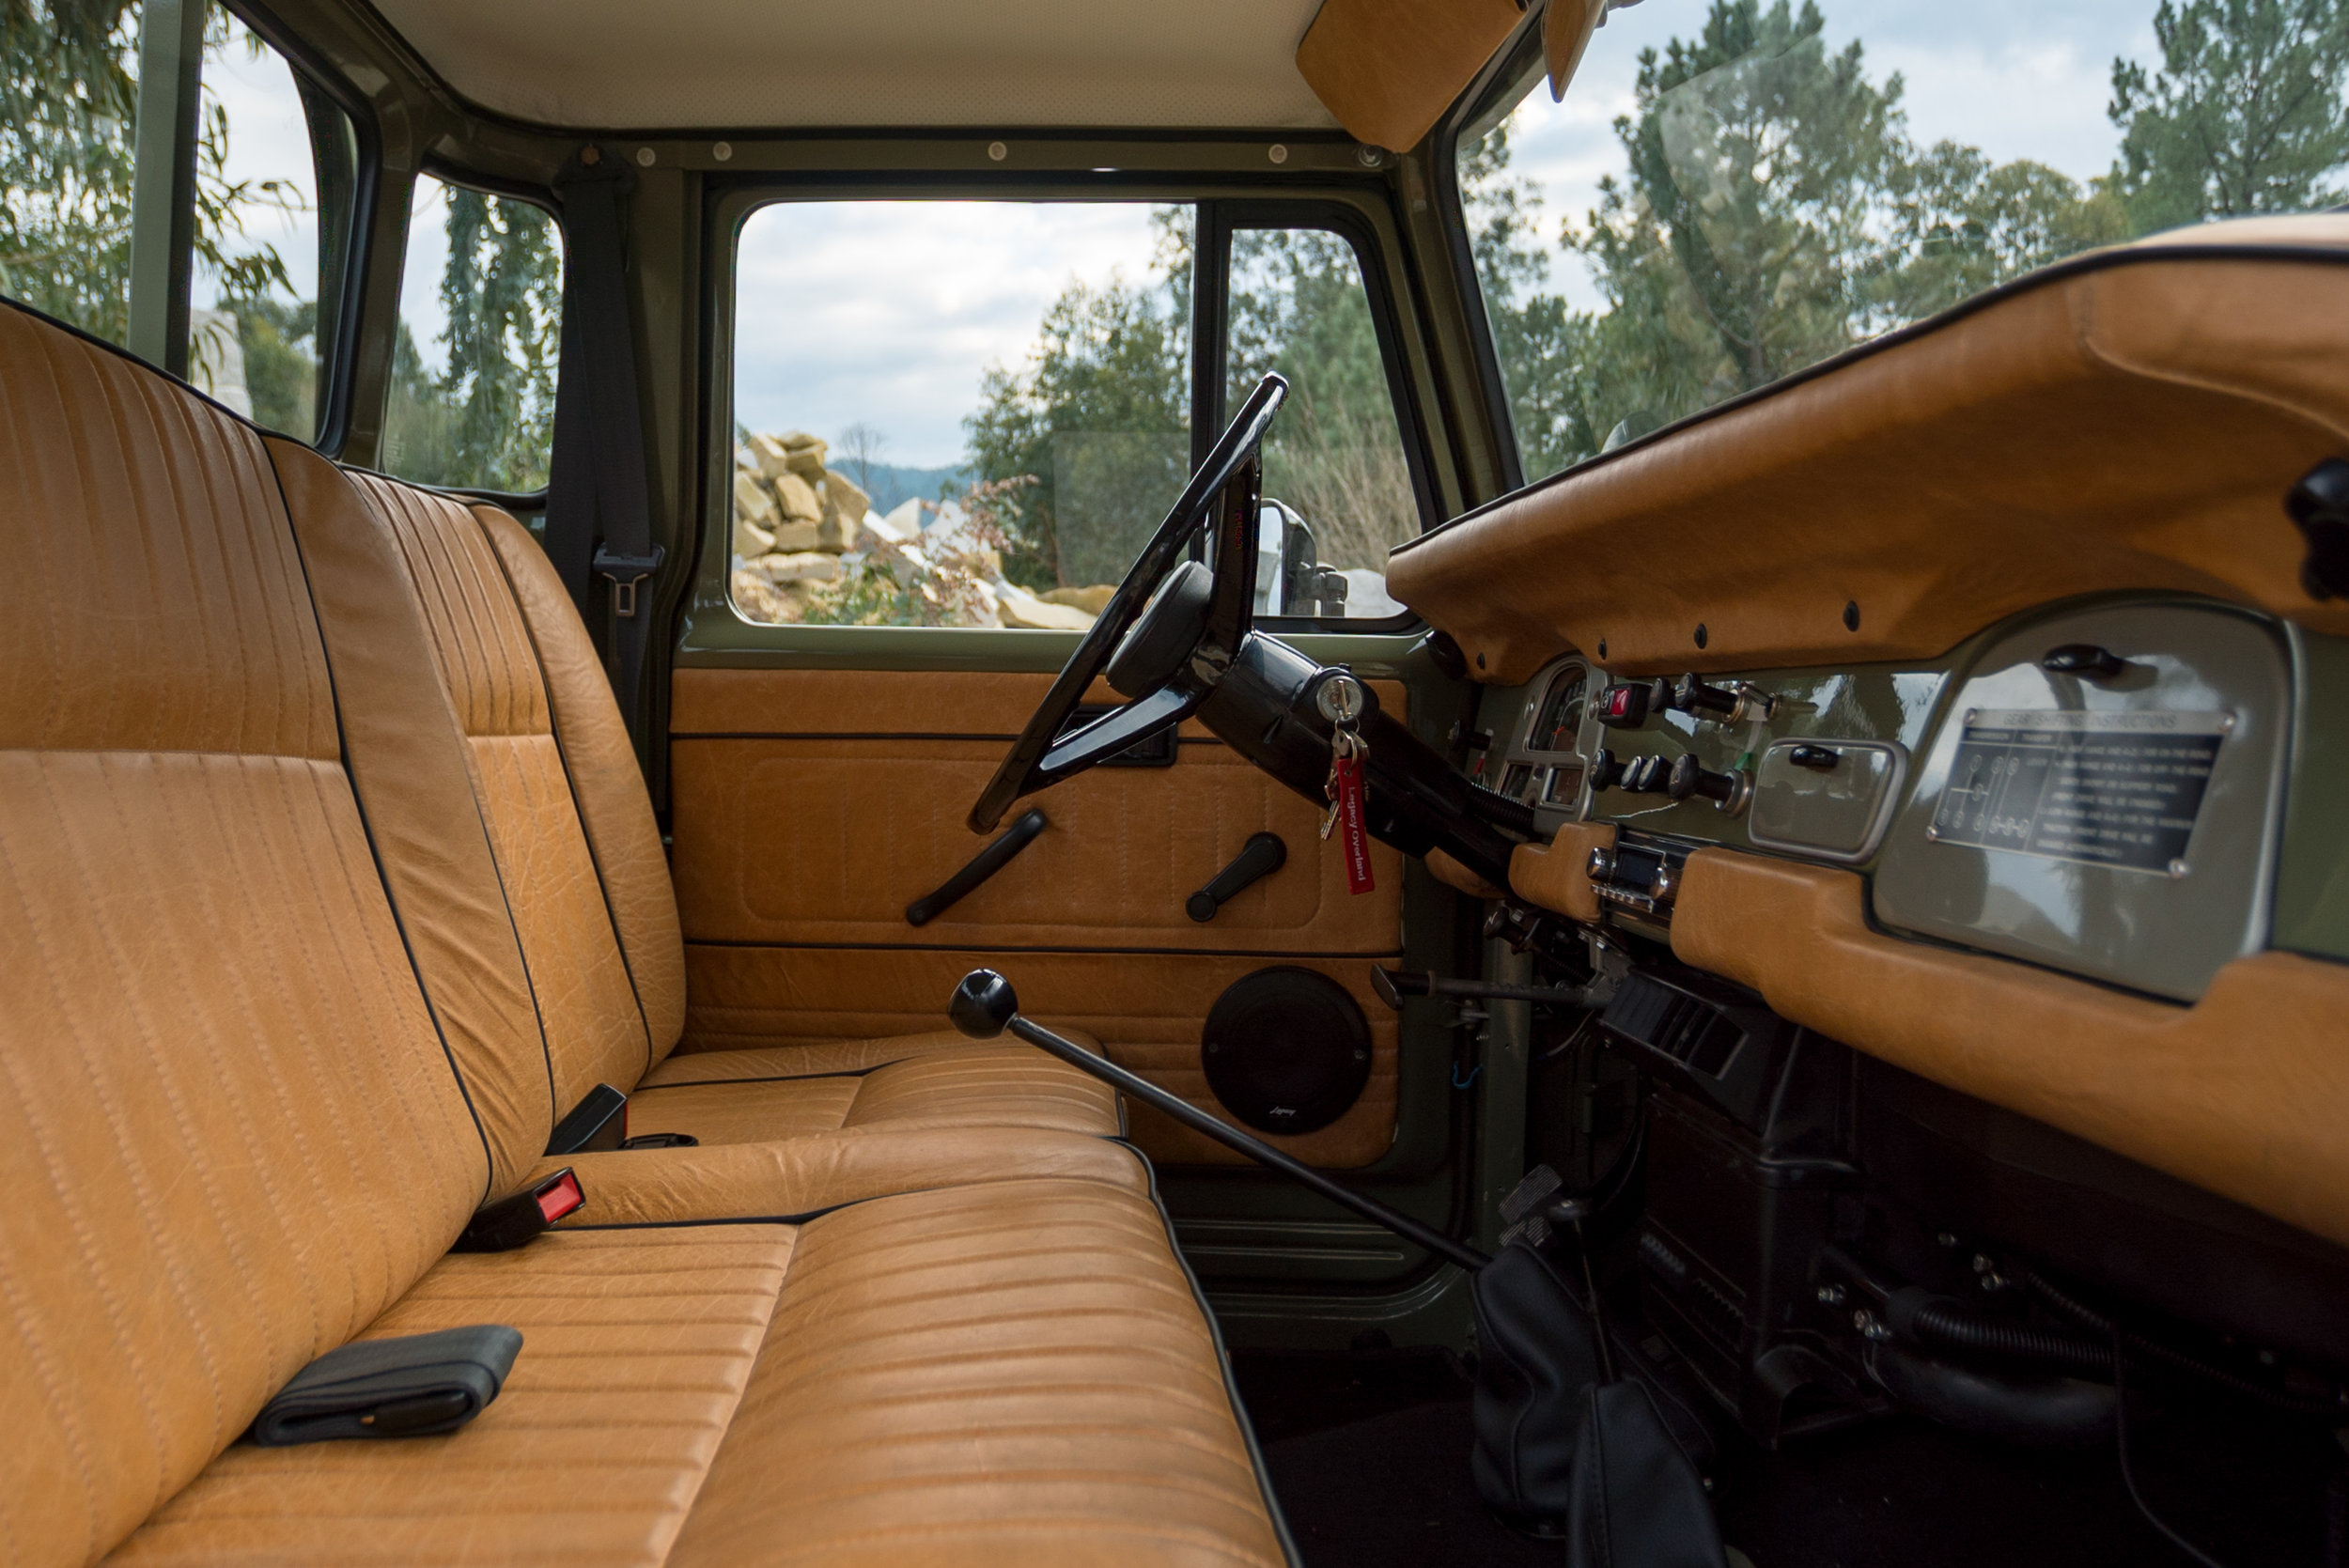 LegacyOverland_1978_ToyotaLandCruiser_HJ45_pick-up_quarry_74.jpg